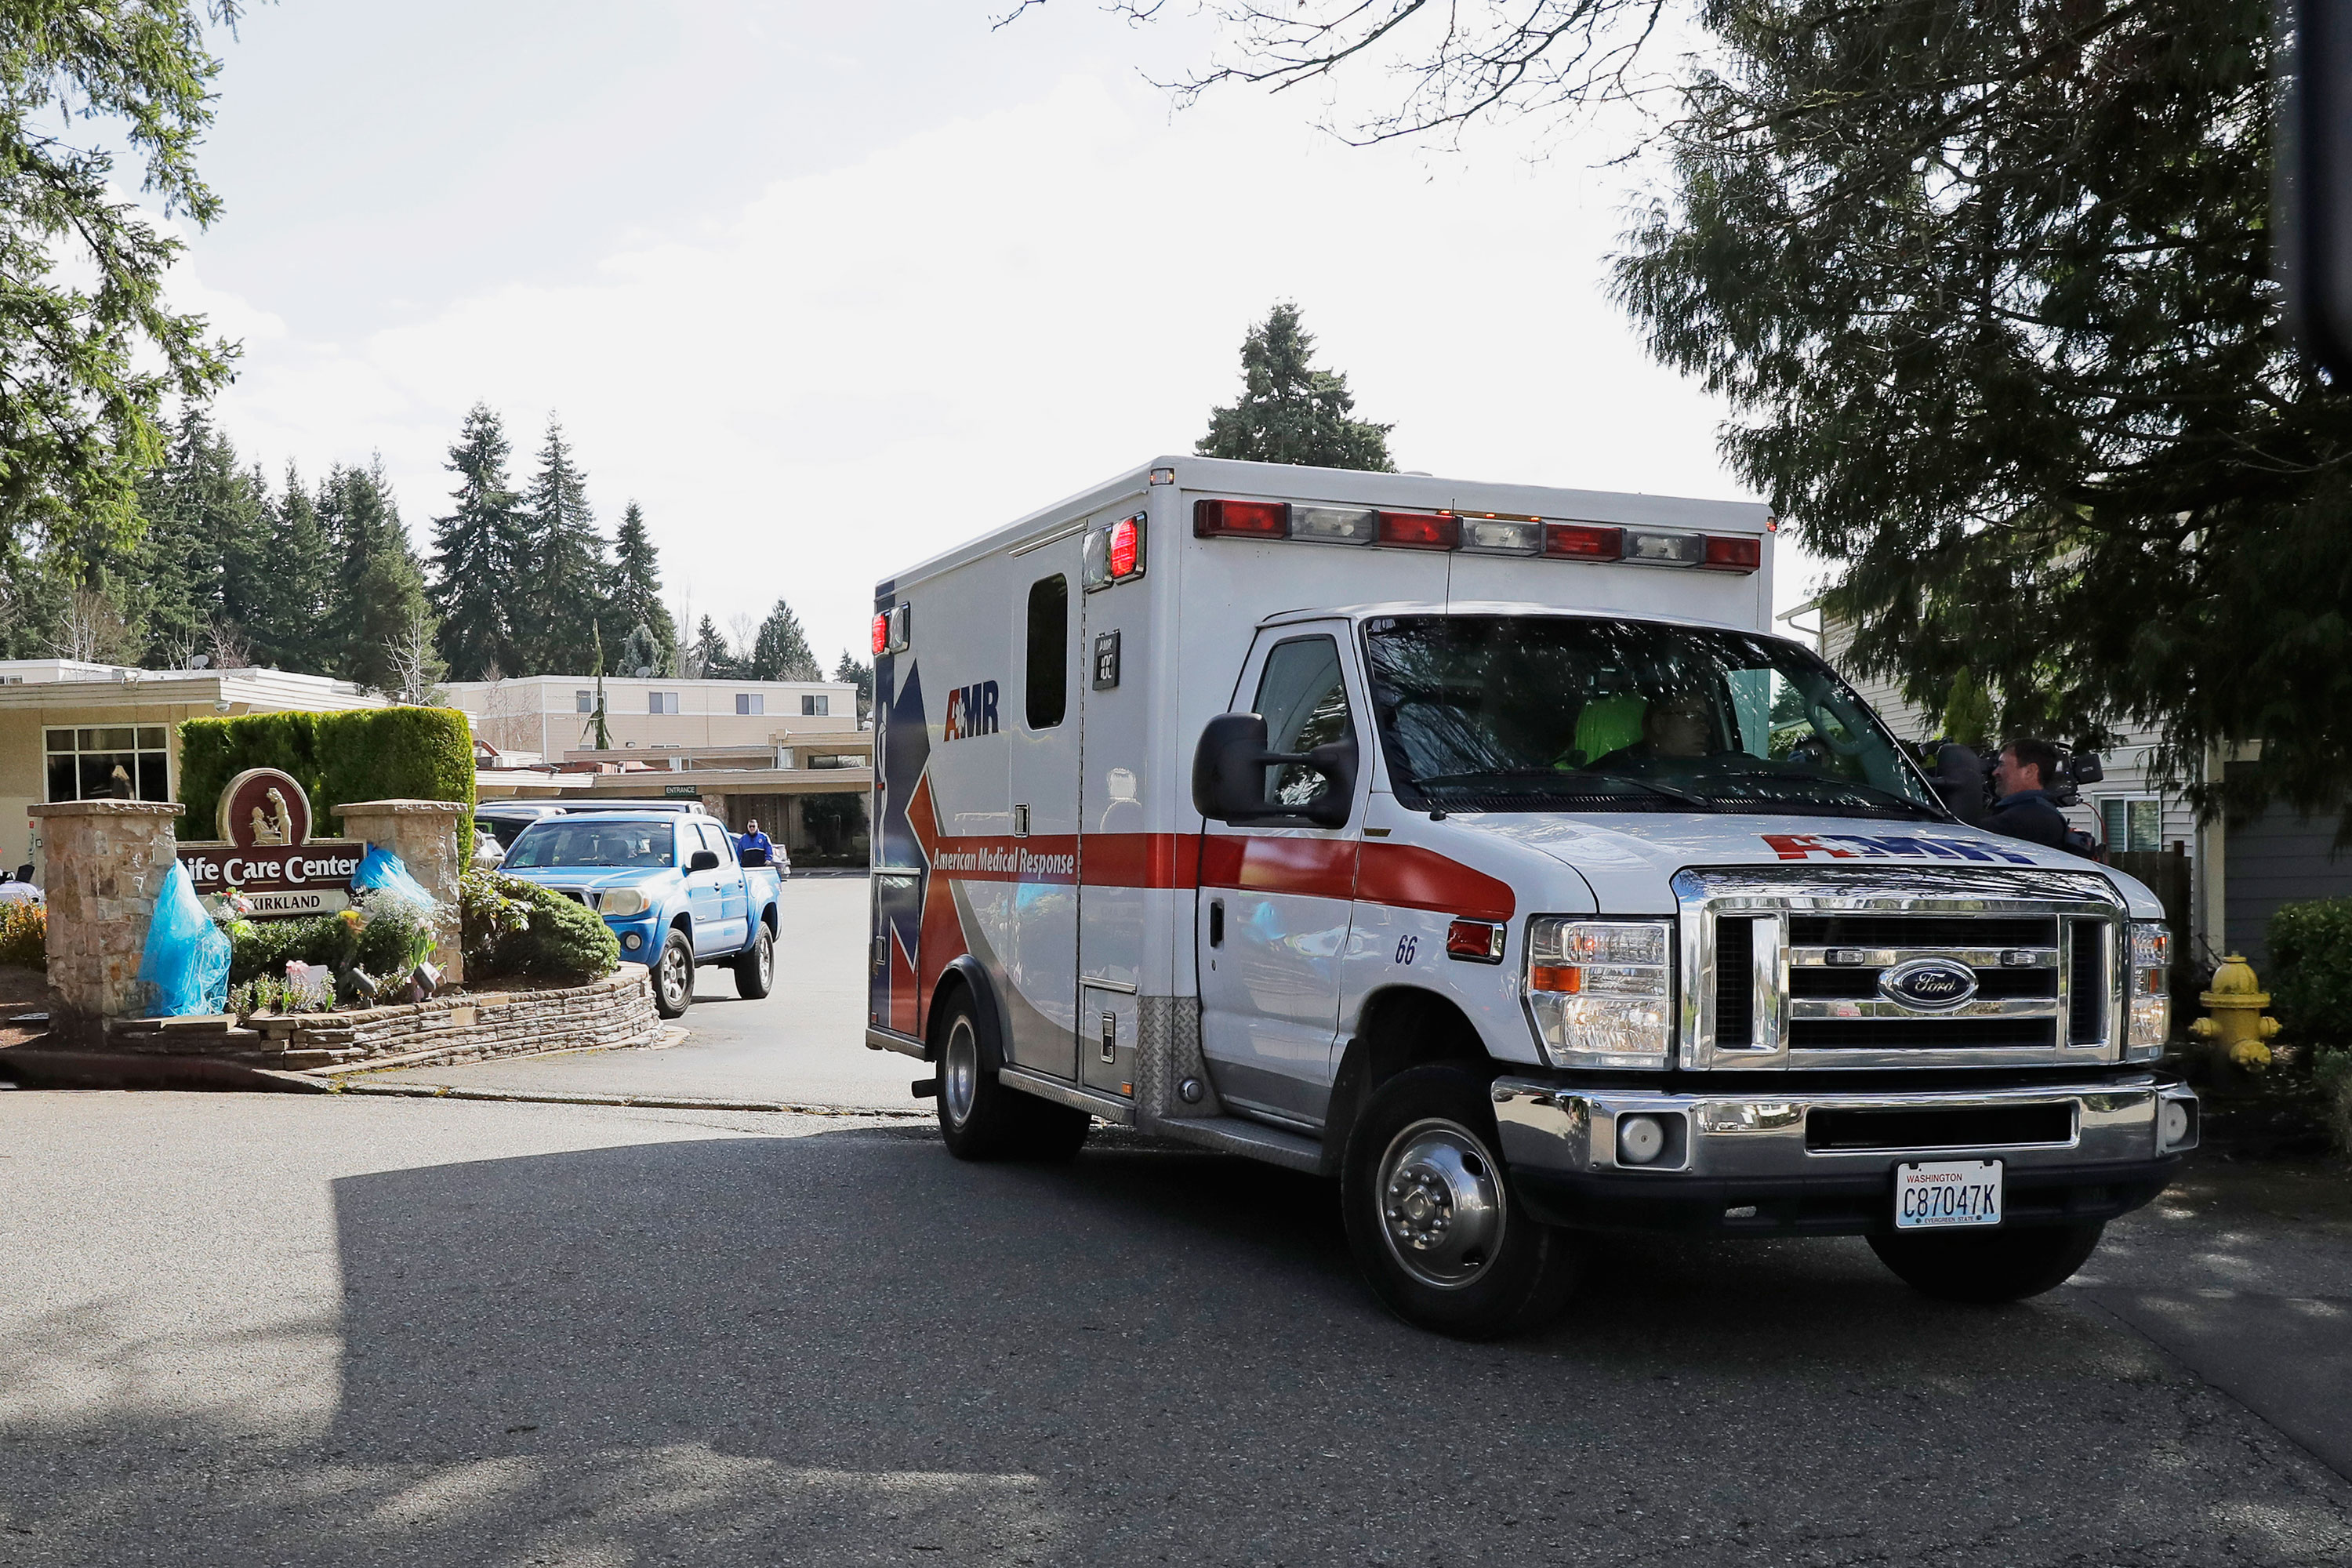 An ambulance leaves Life Care Center in Kirkland, Washington on March 12.